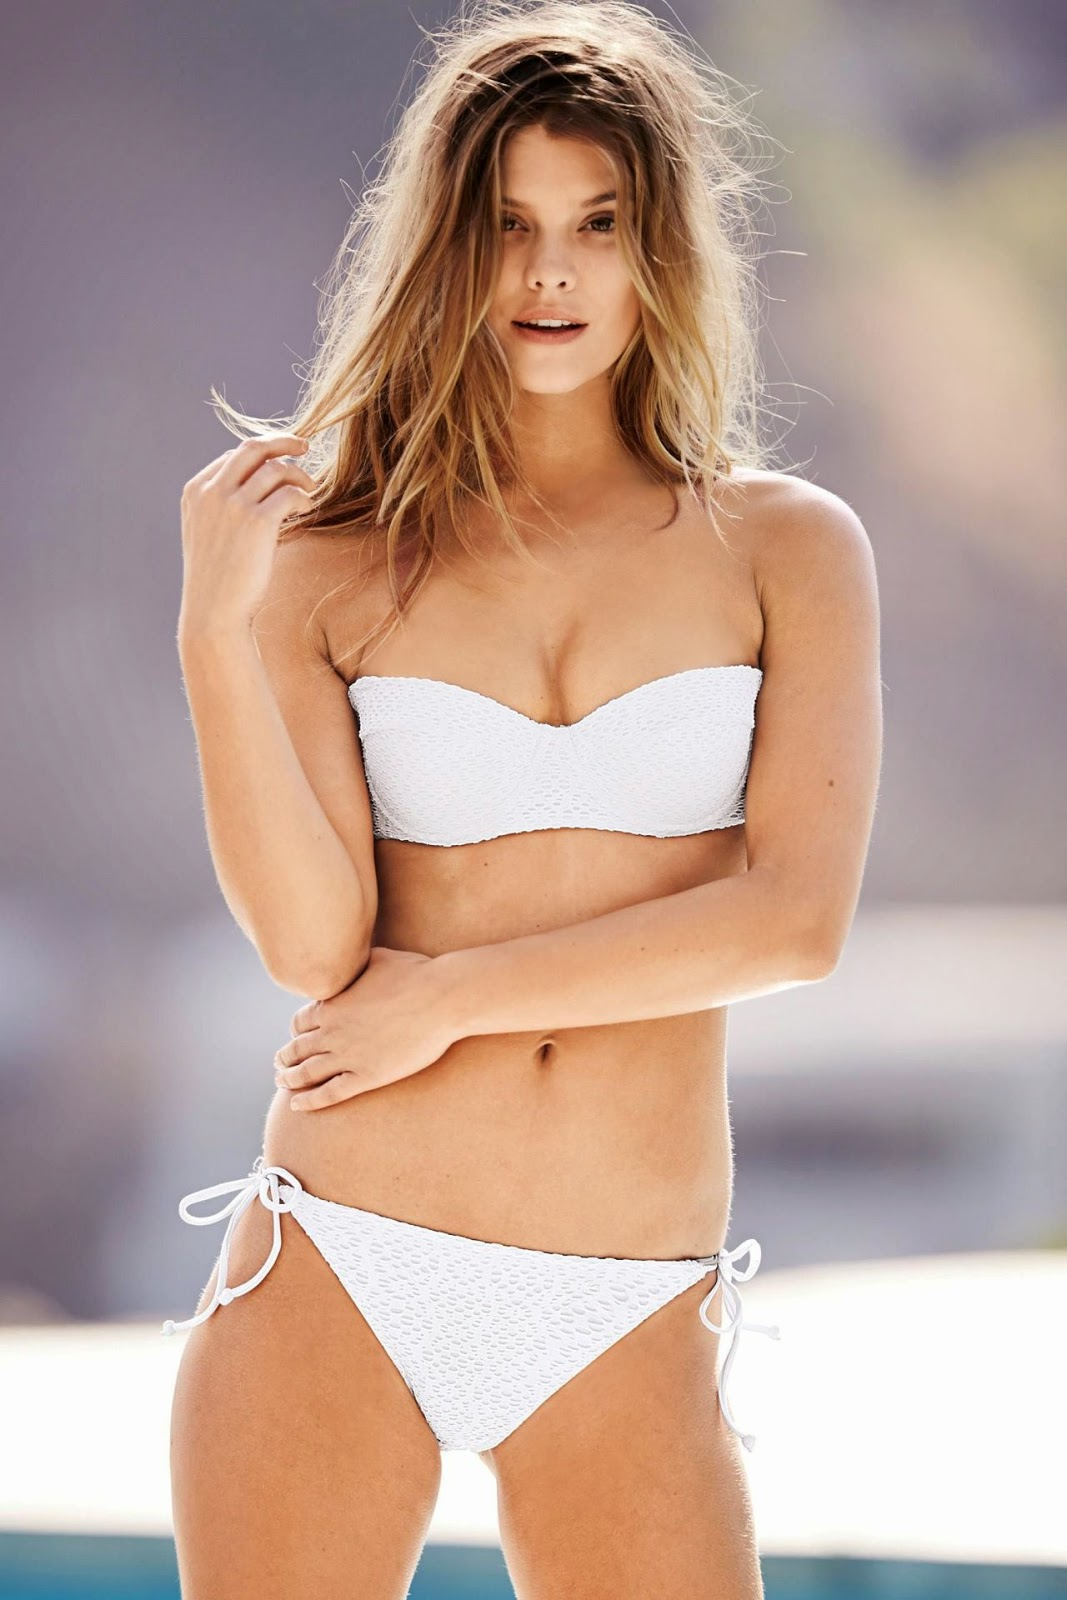 'Winter Sun' Nina Agdal poses for the Next Swimwear Fall/Winter 2014 Campaign